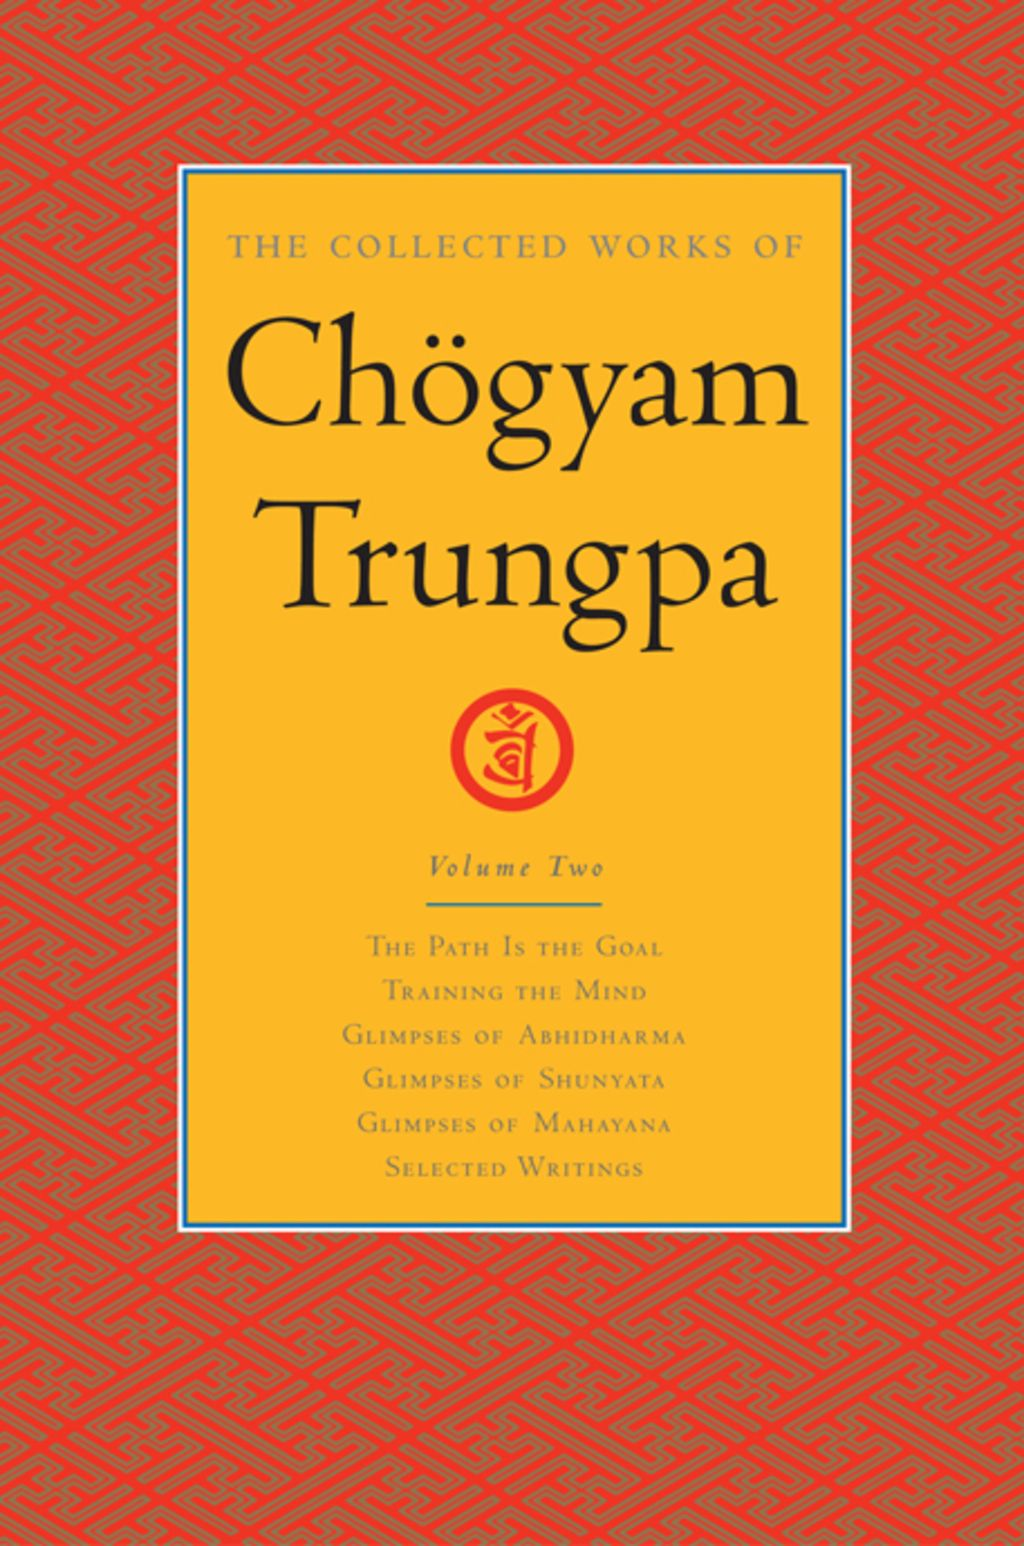 The Collected Works Of Chogyam Trungpa Volume 2 Ebook In 2019